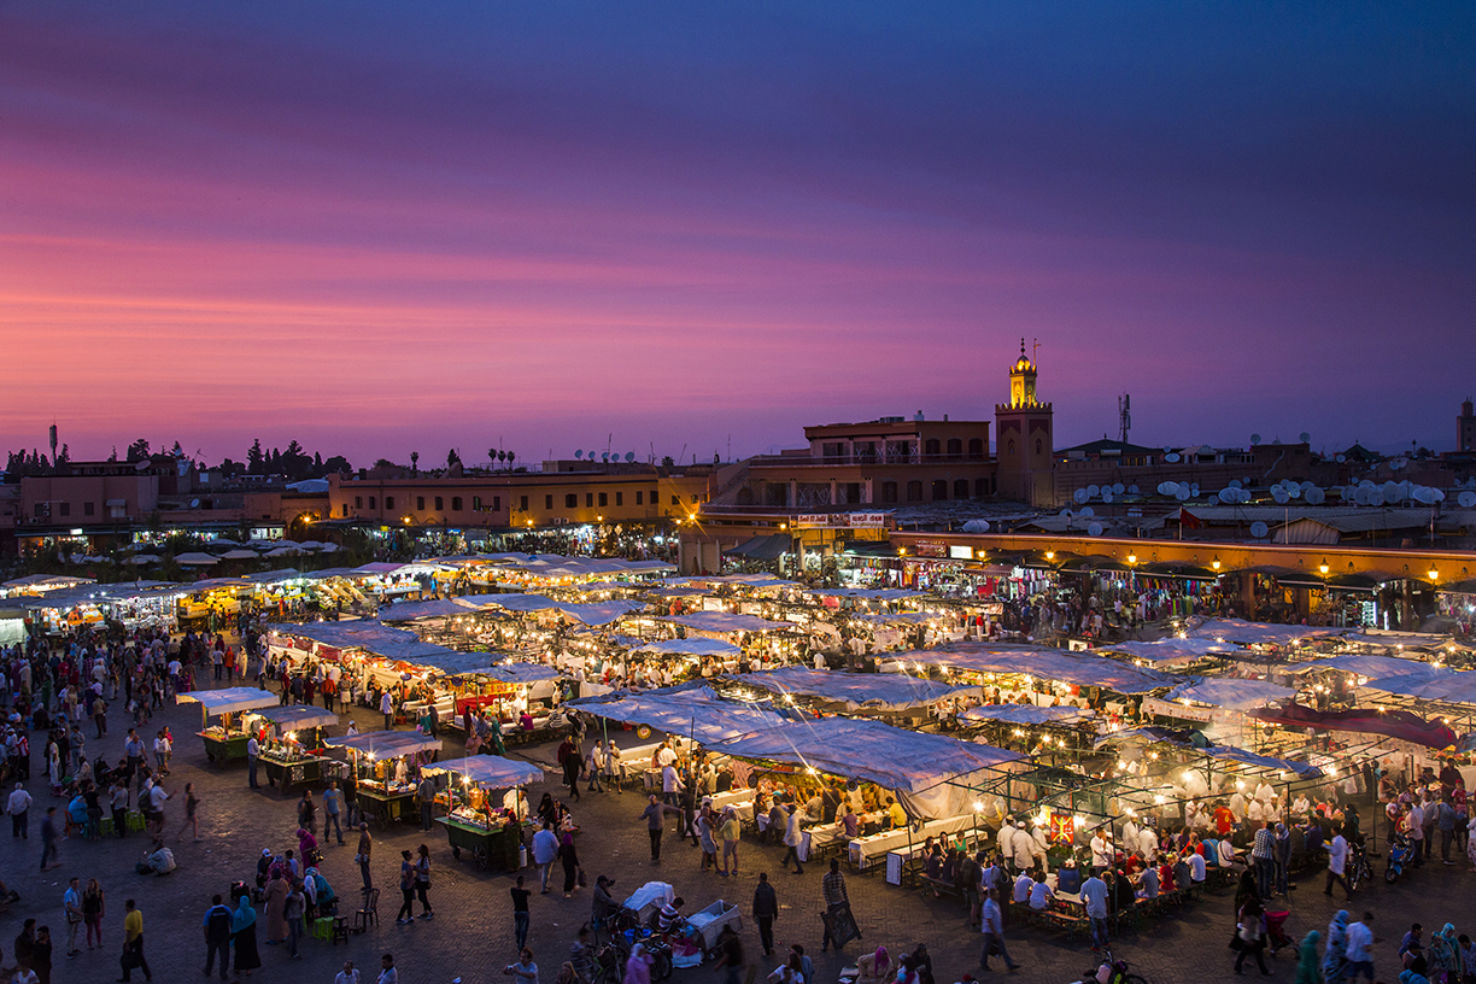 Marrakech's Djemaa el-Fna will delight all your senses